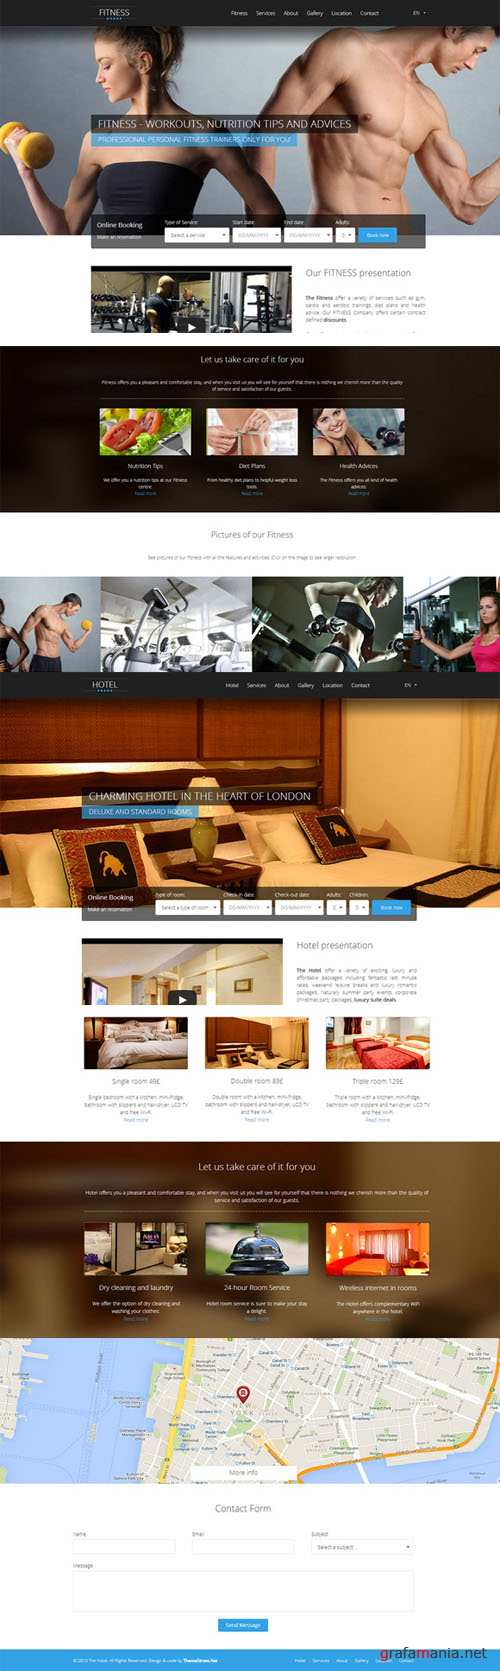 CreativeMarket - HOTFIT - Hotel and Fitness Template 21568